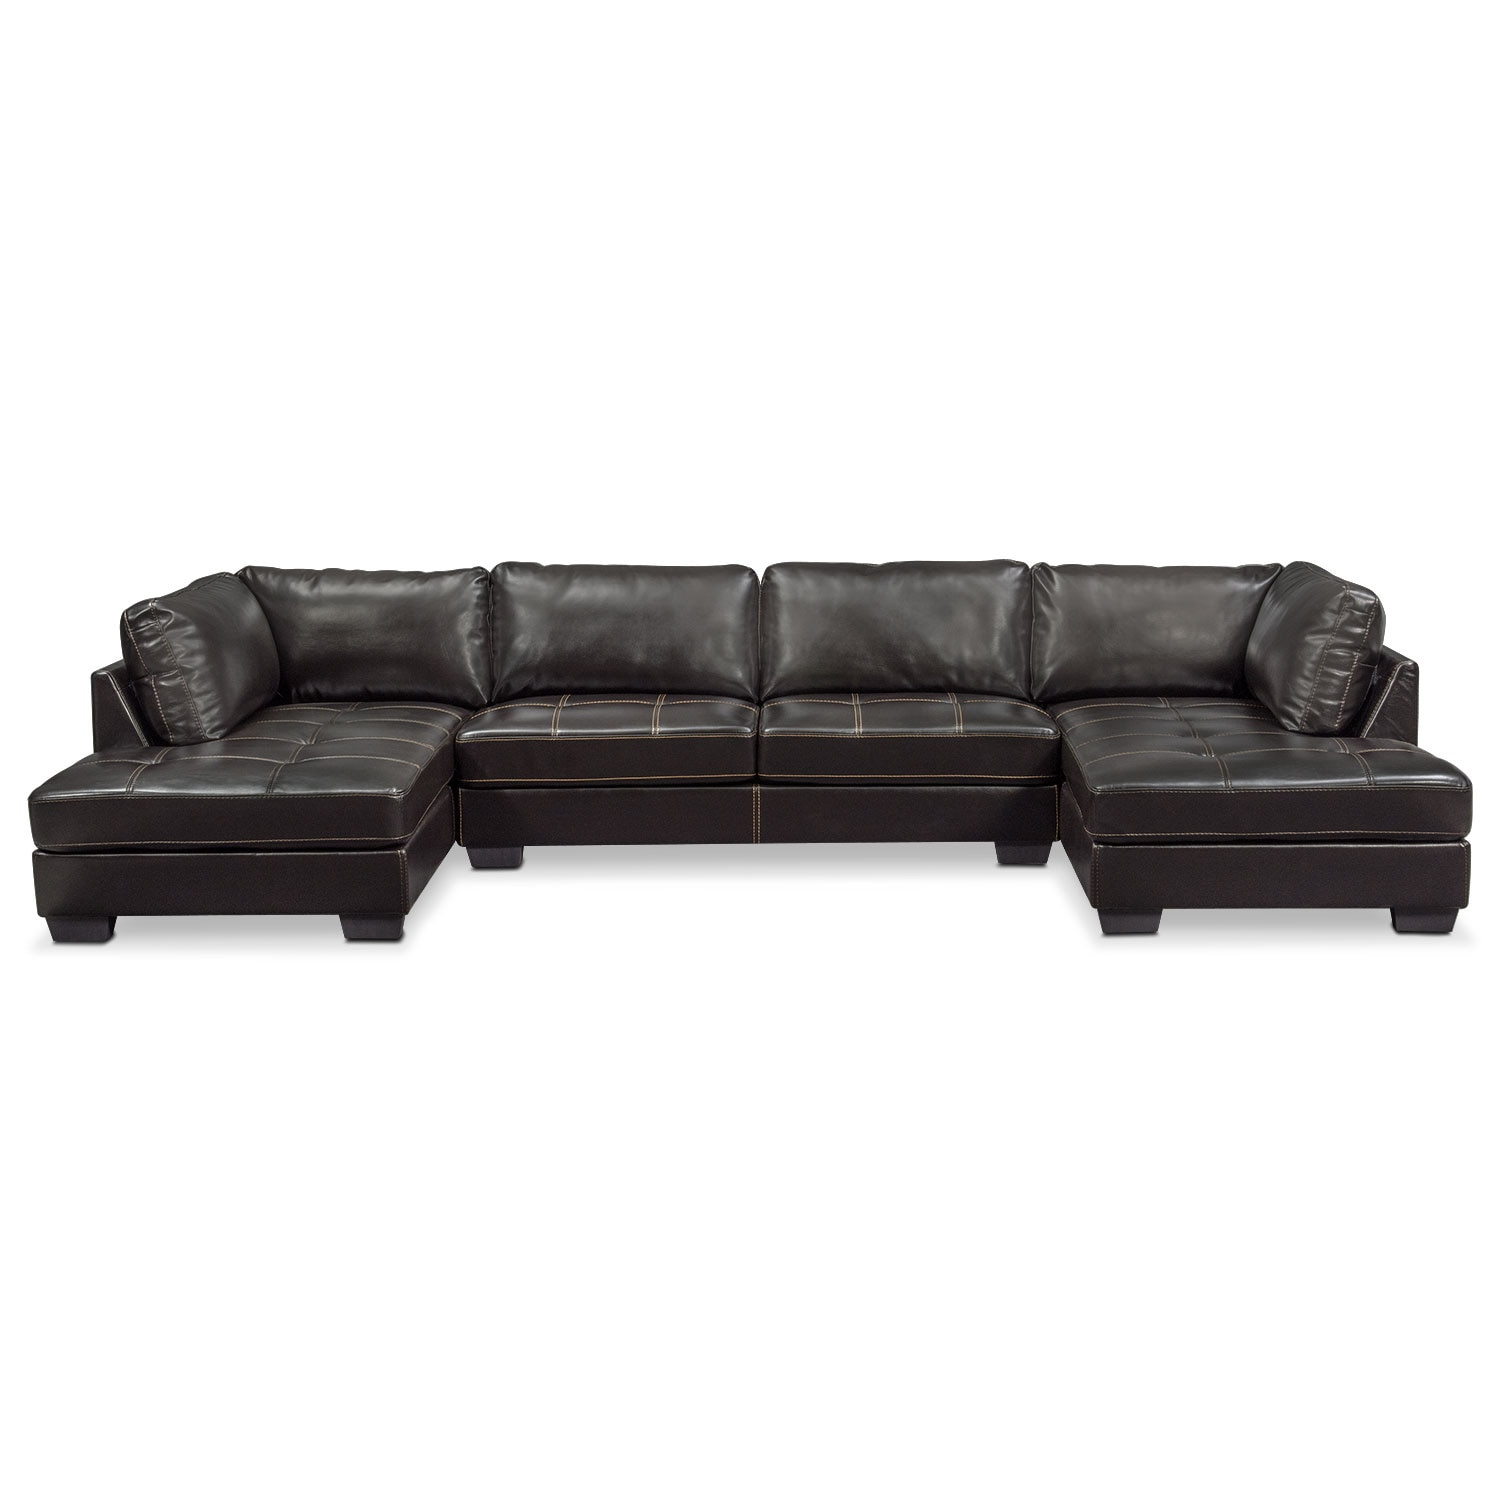 Santana 3-Piece Sectional - Black